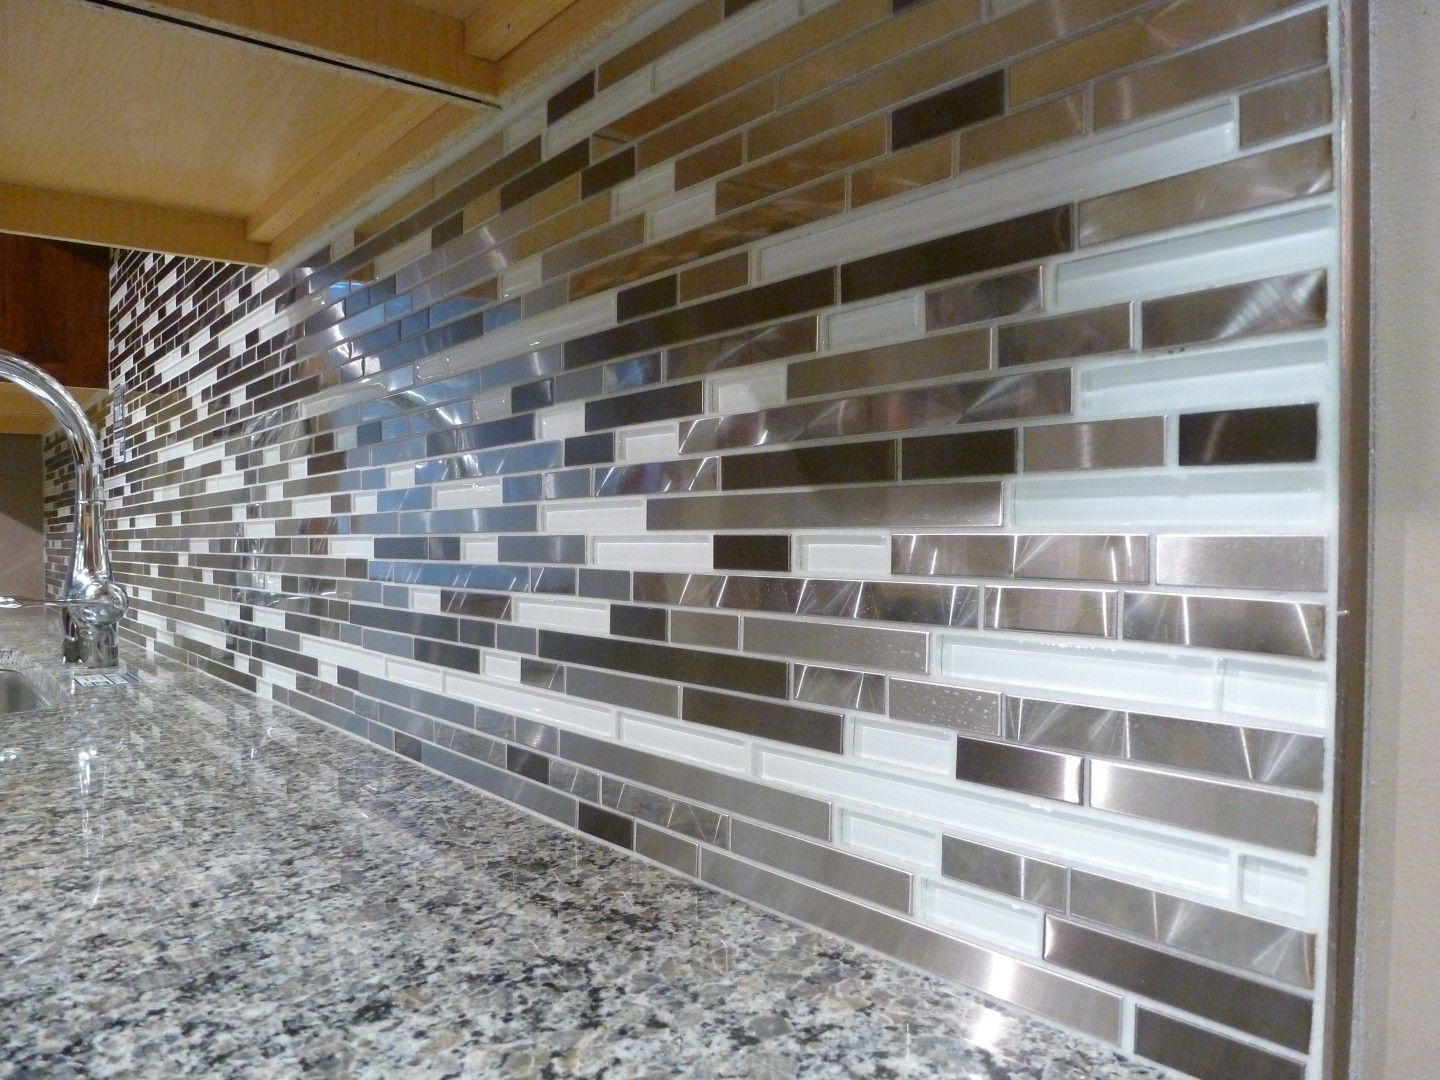 Uncategorized How To Install Mosaic Tile Backsplash In Kitchen glass mosaic tiles for your backsplash installation guidelines backsplash